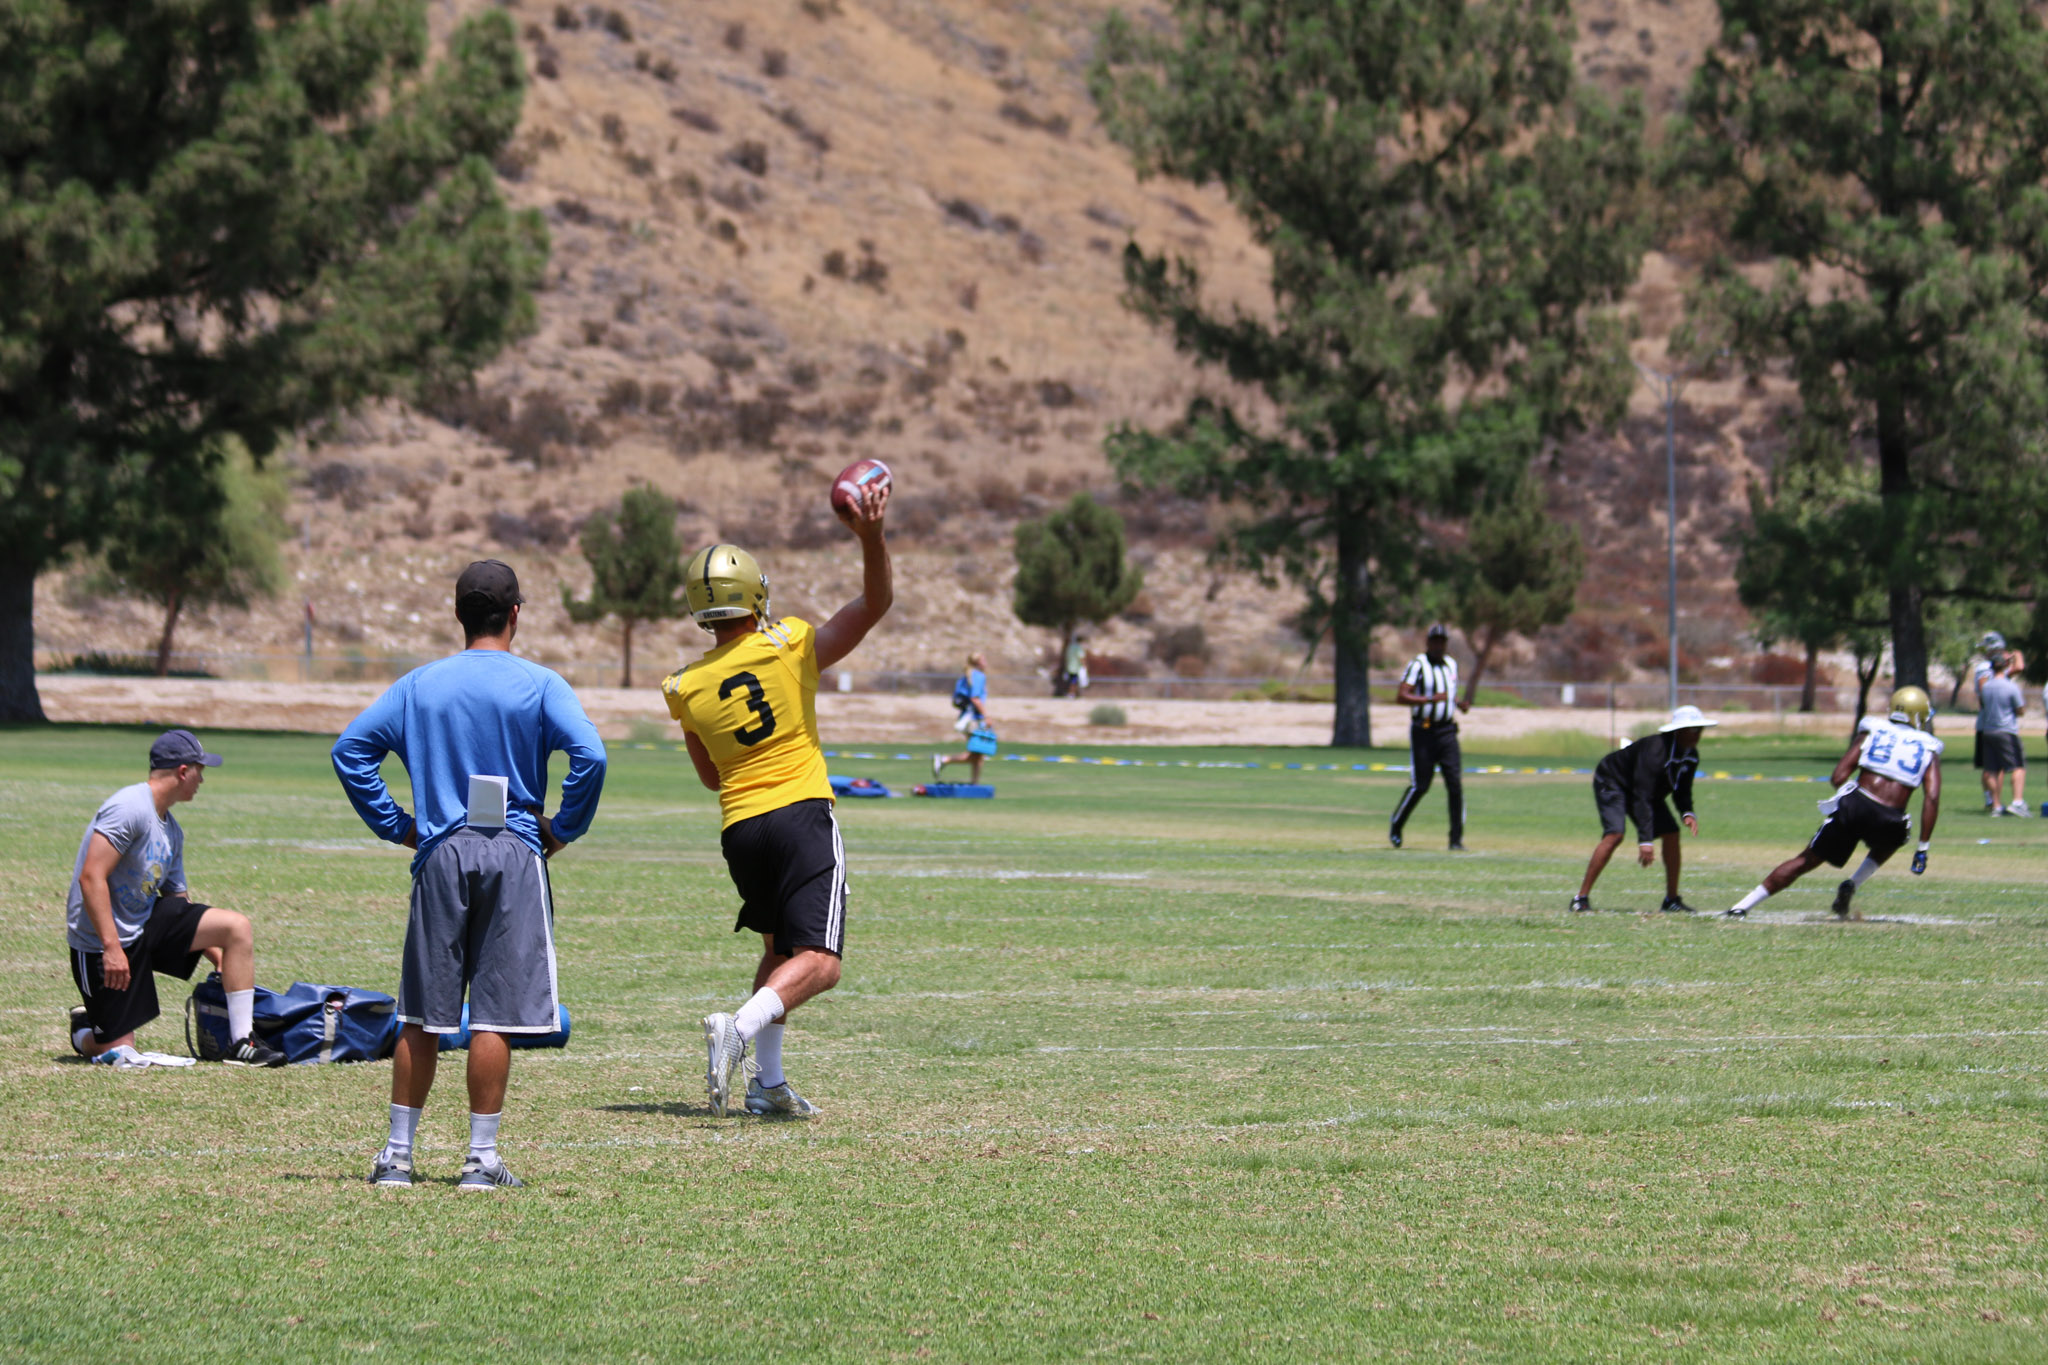 Josh Rosen throws the ball as receiver Alex Van Dyke makes a cut to come back for the ball.